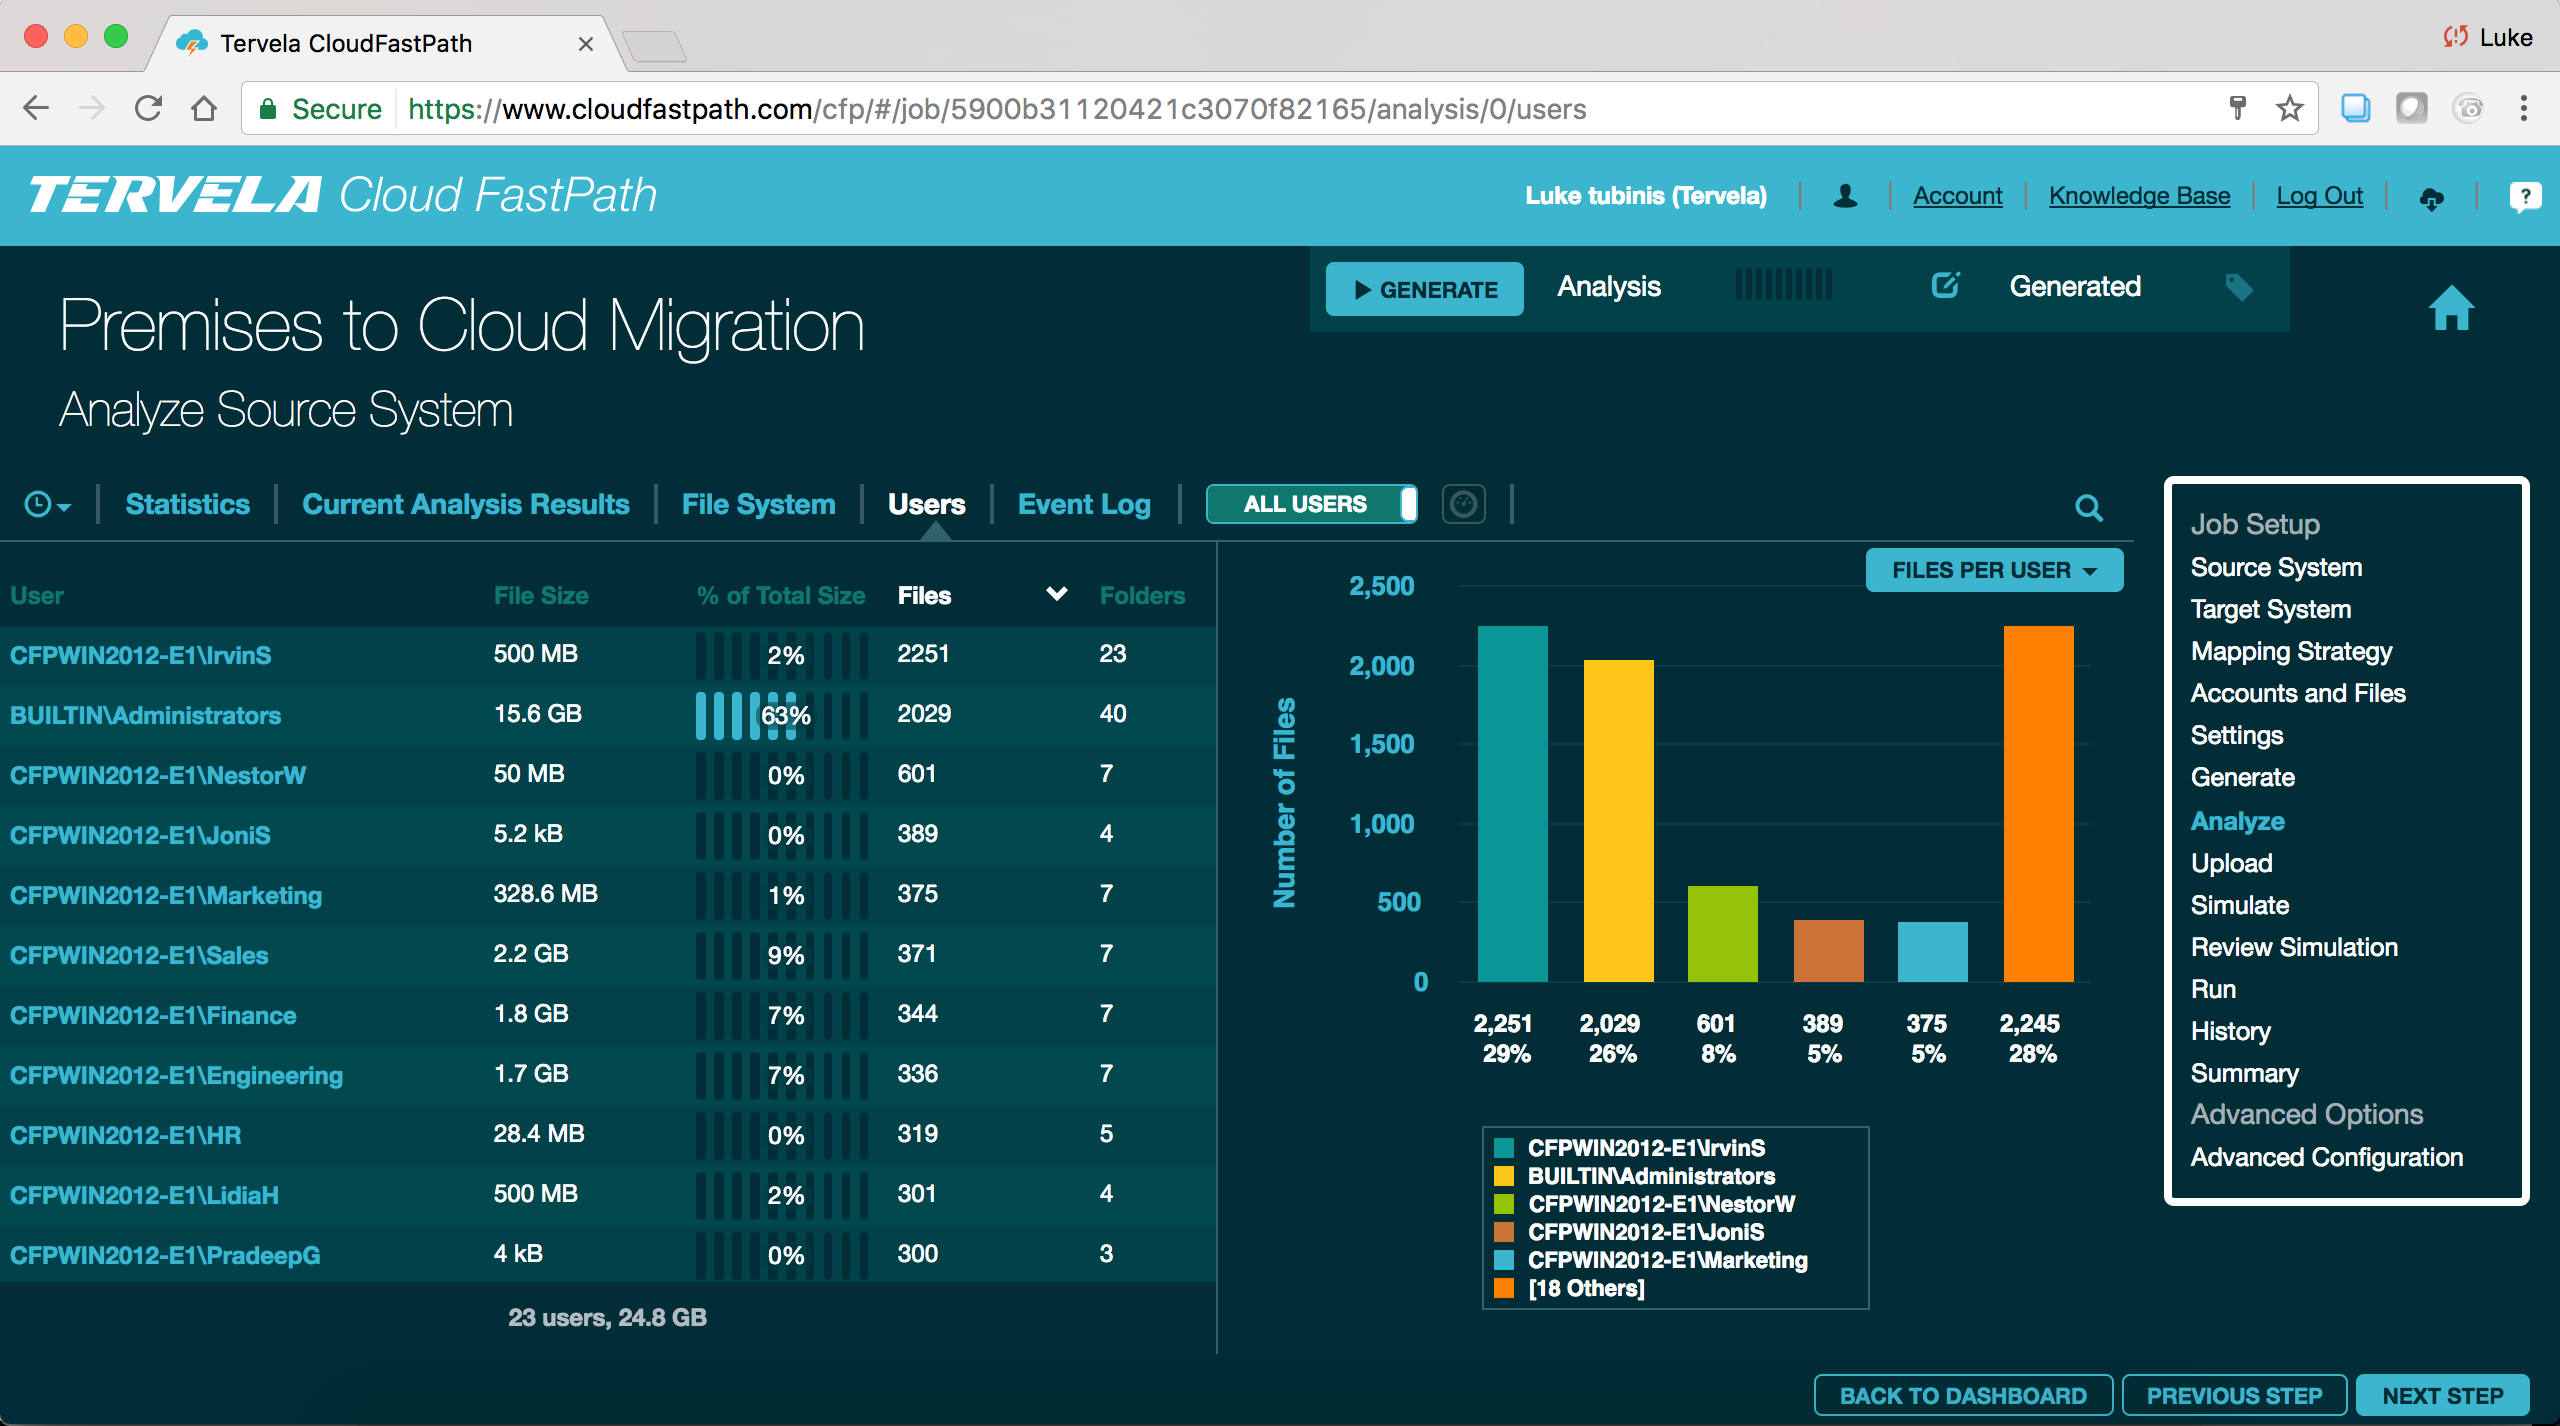 How to Use Analytics to Obtain the Full ROI of a Migration